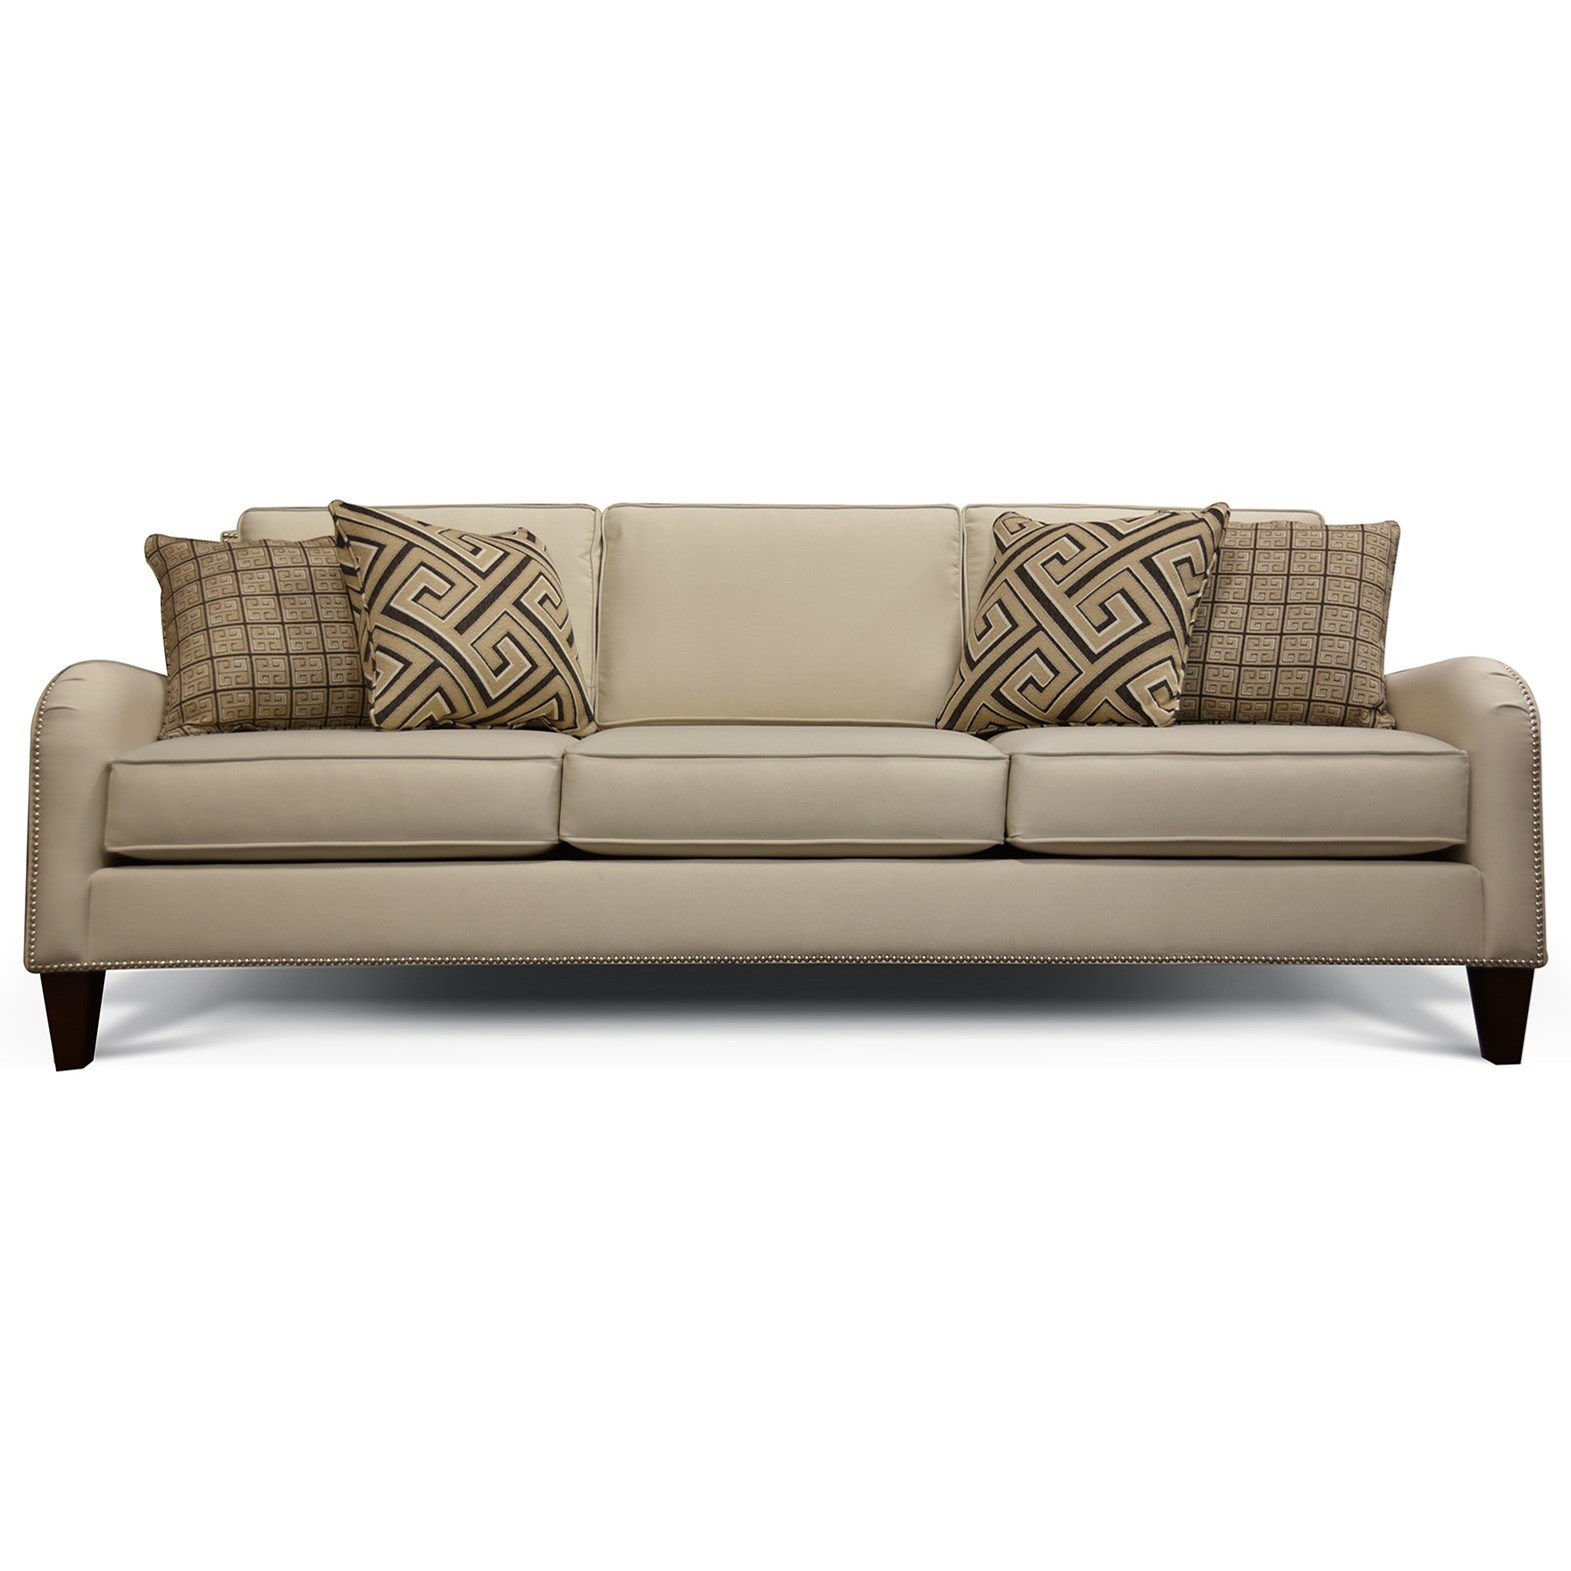 England Preston Sofa With Nailhead Trim And Waterfall Arms